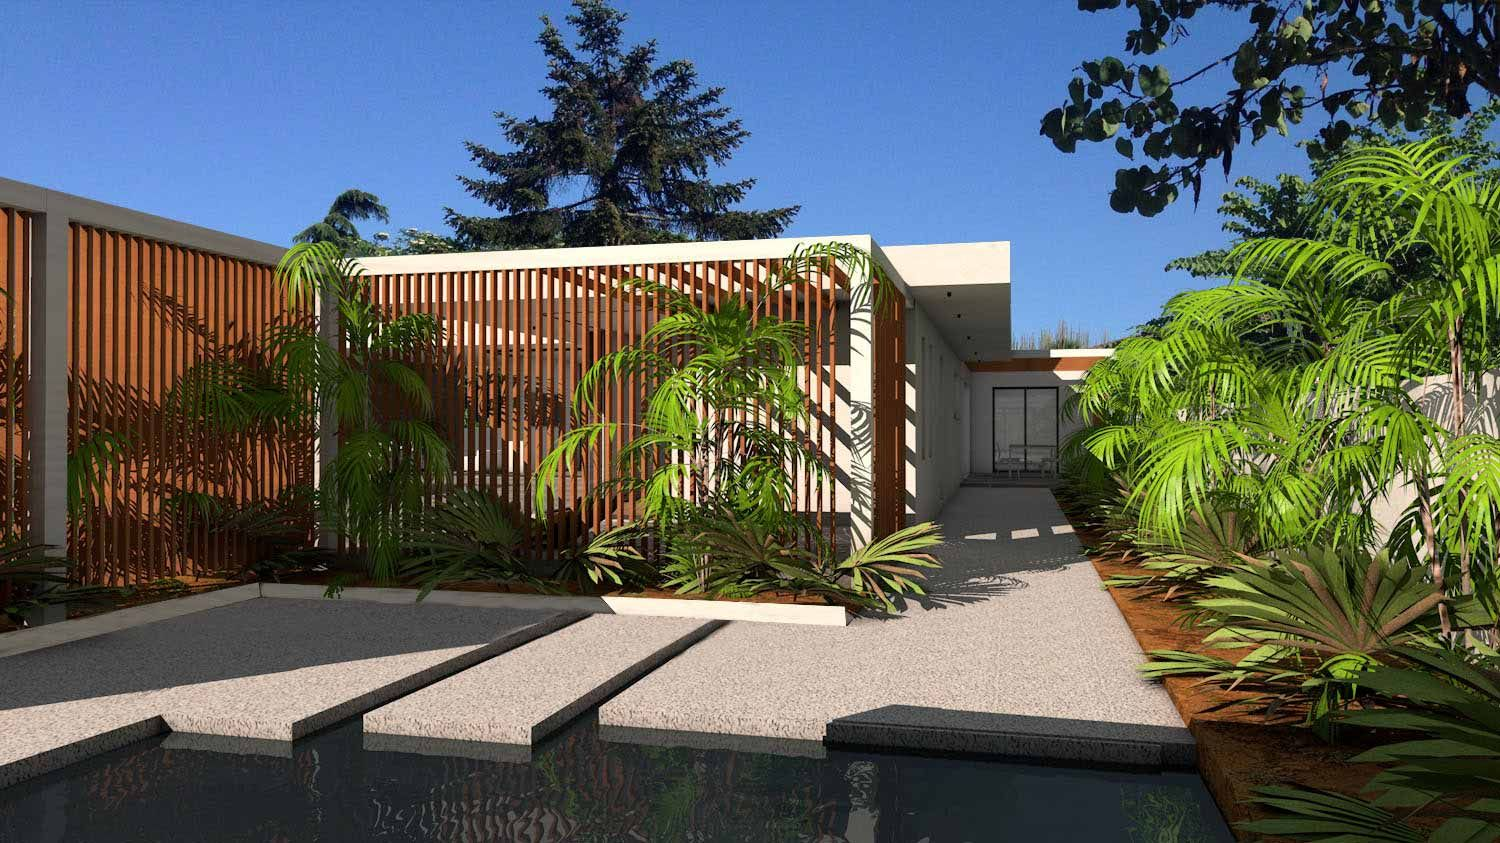 Atelier d 39 architecture sc nario maison contemporaine d for Interieurs maisons contemporaines